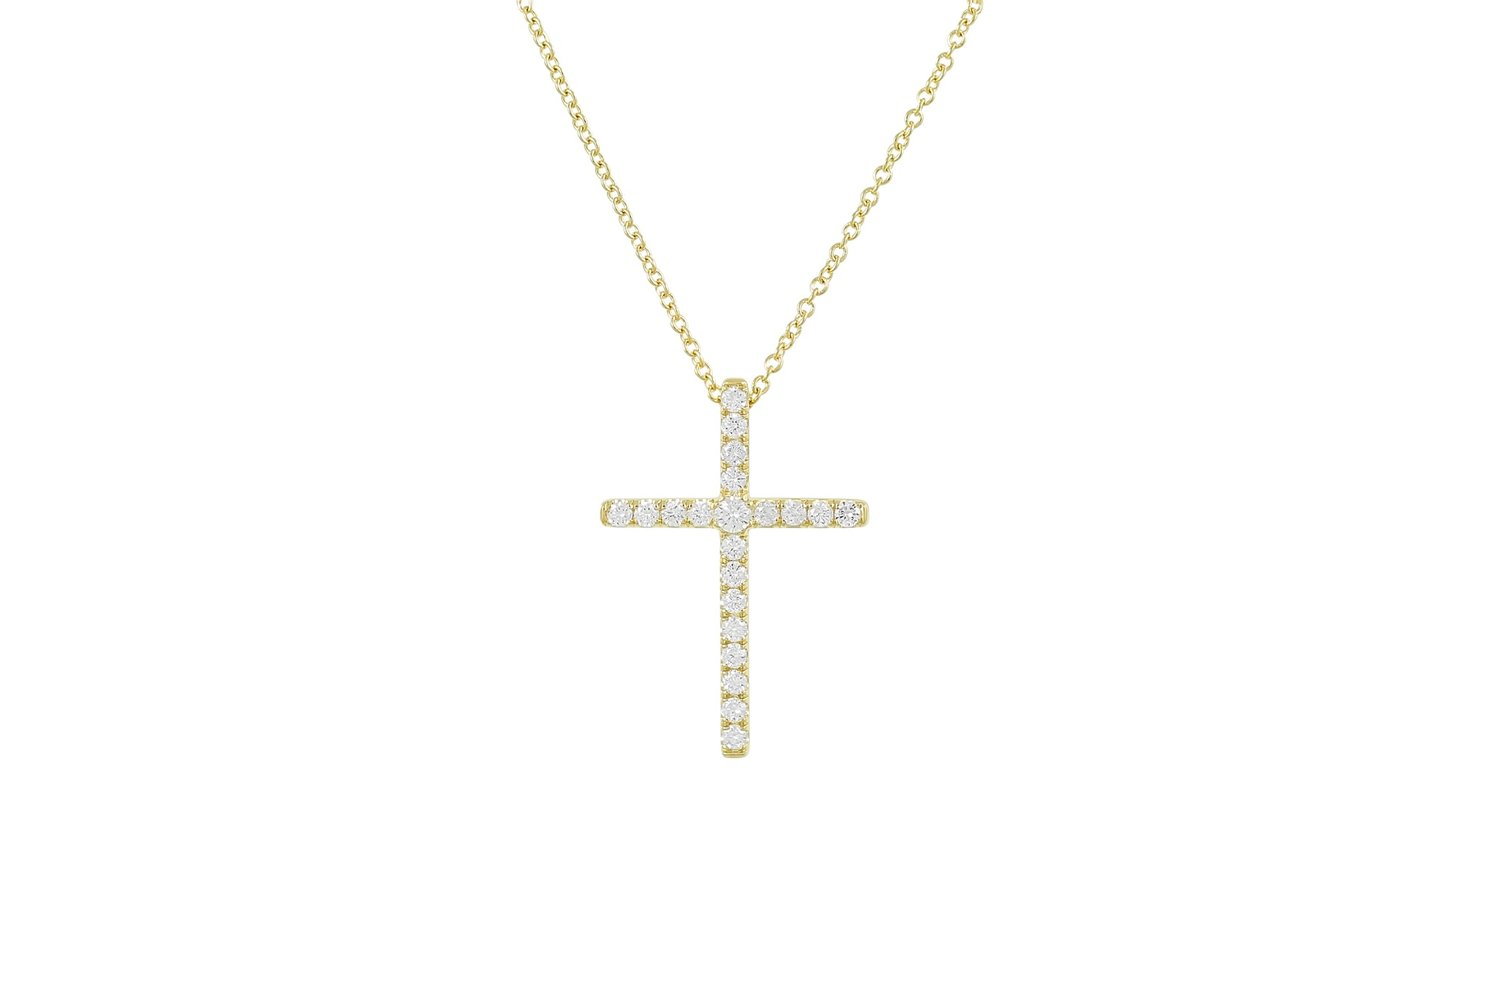 Shop our Diamond Cross Necklaces - Small, Medium, and Large Sizes Available